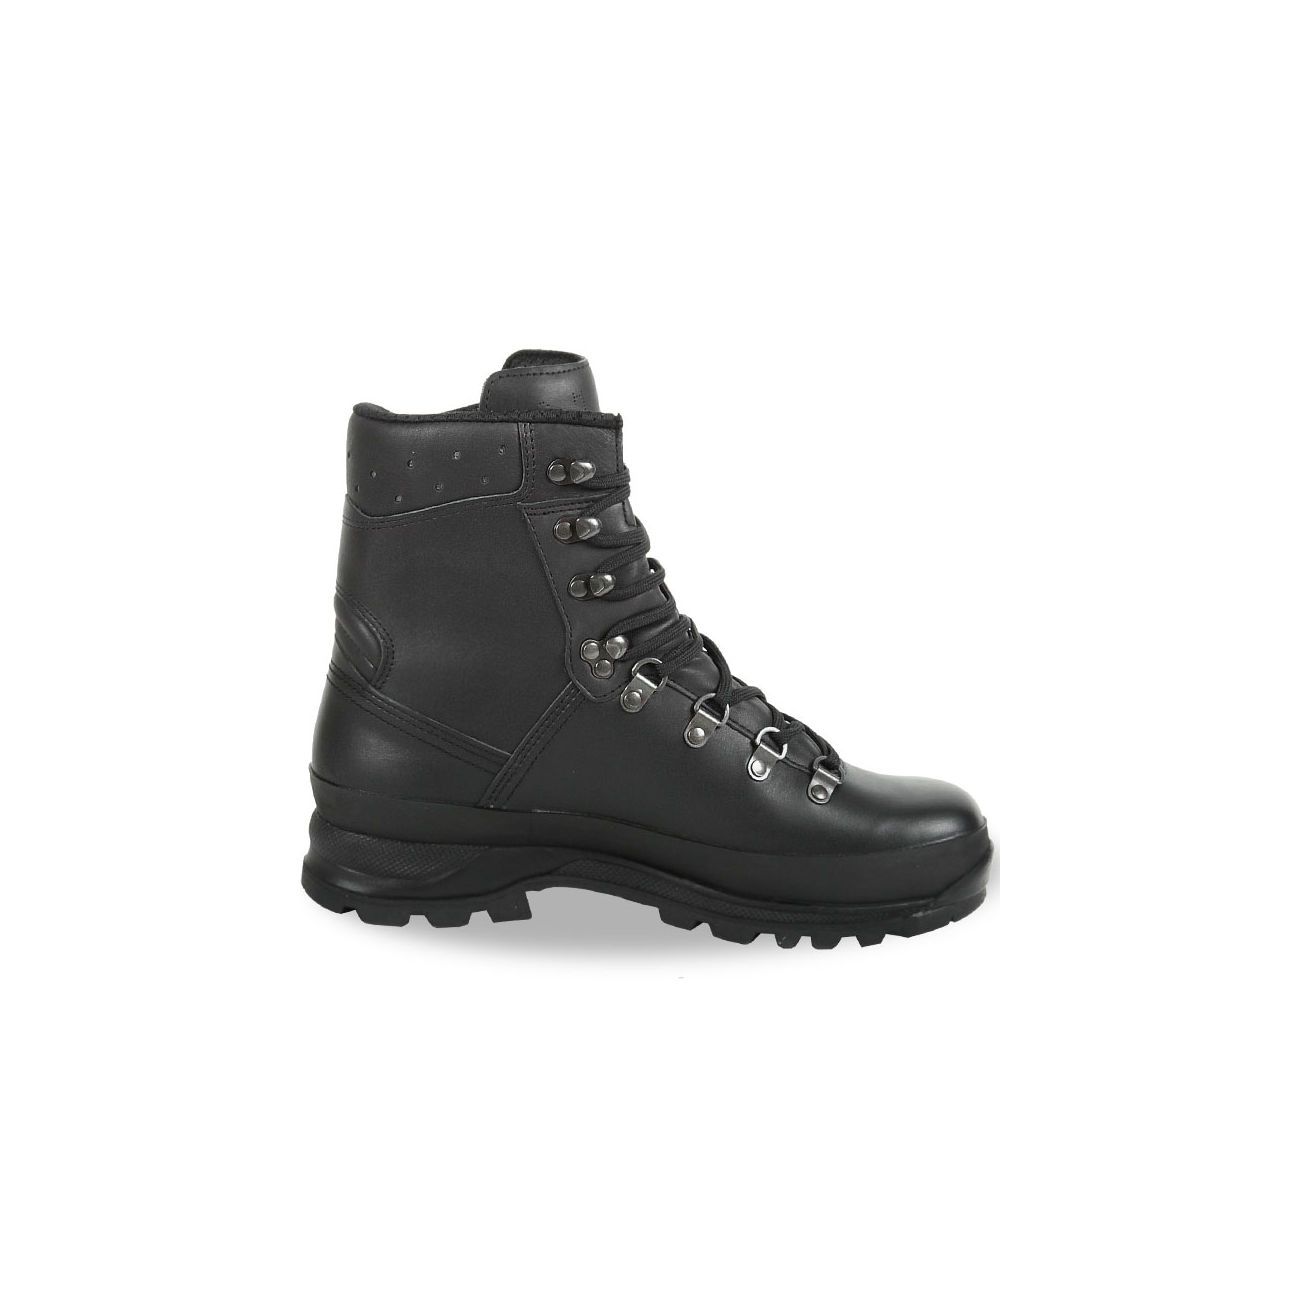 Lowa Mountain Boot GTX schwarz 2